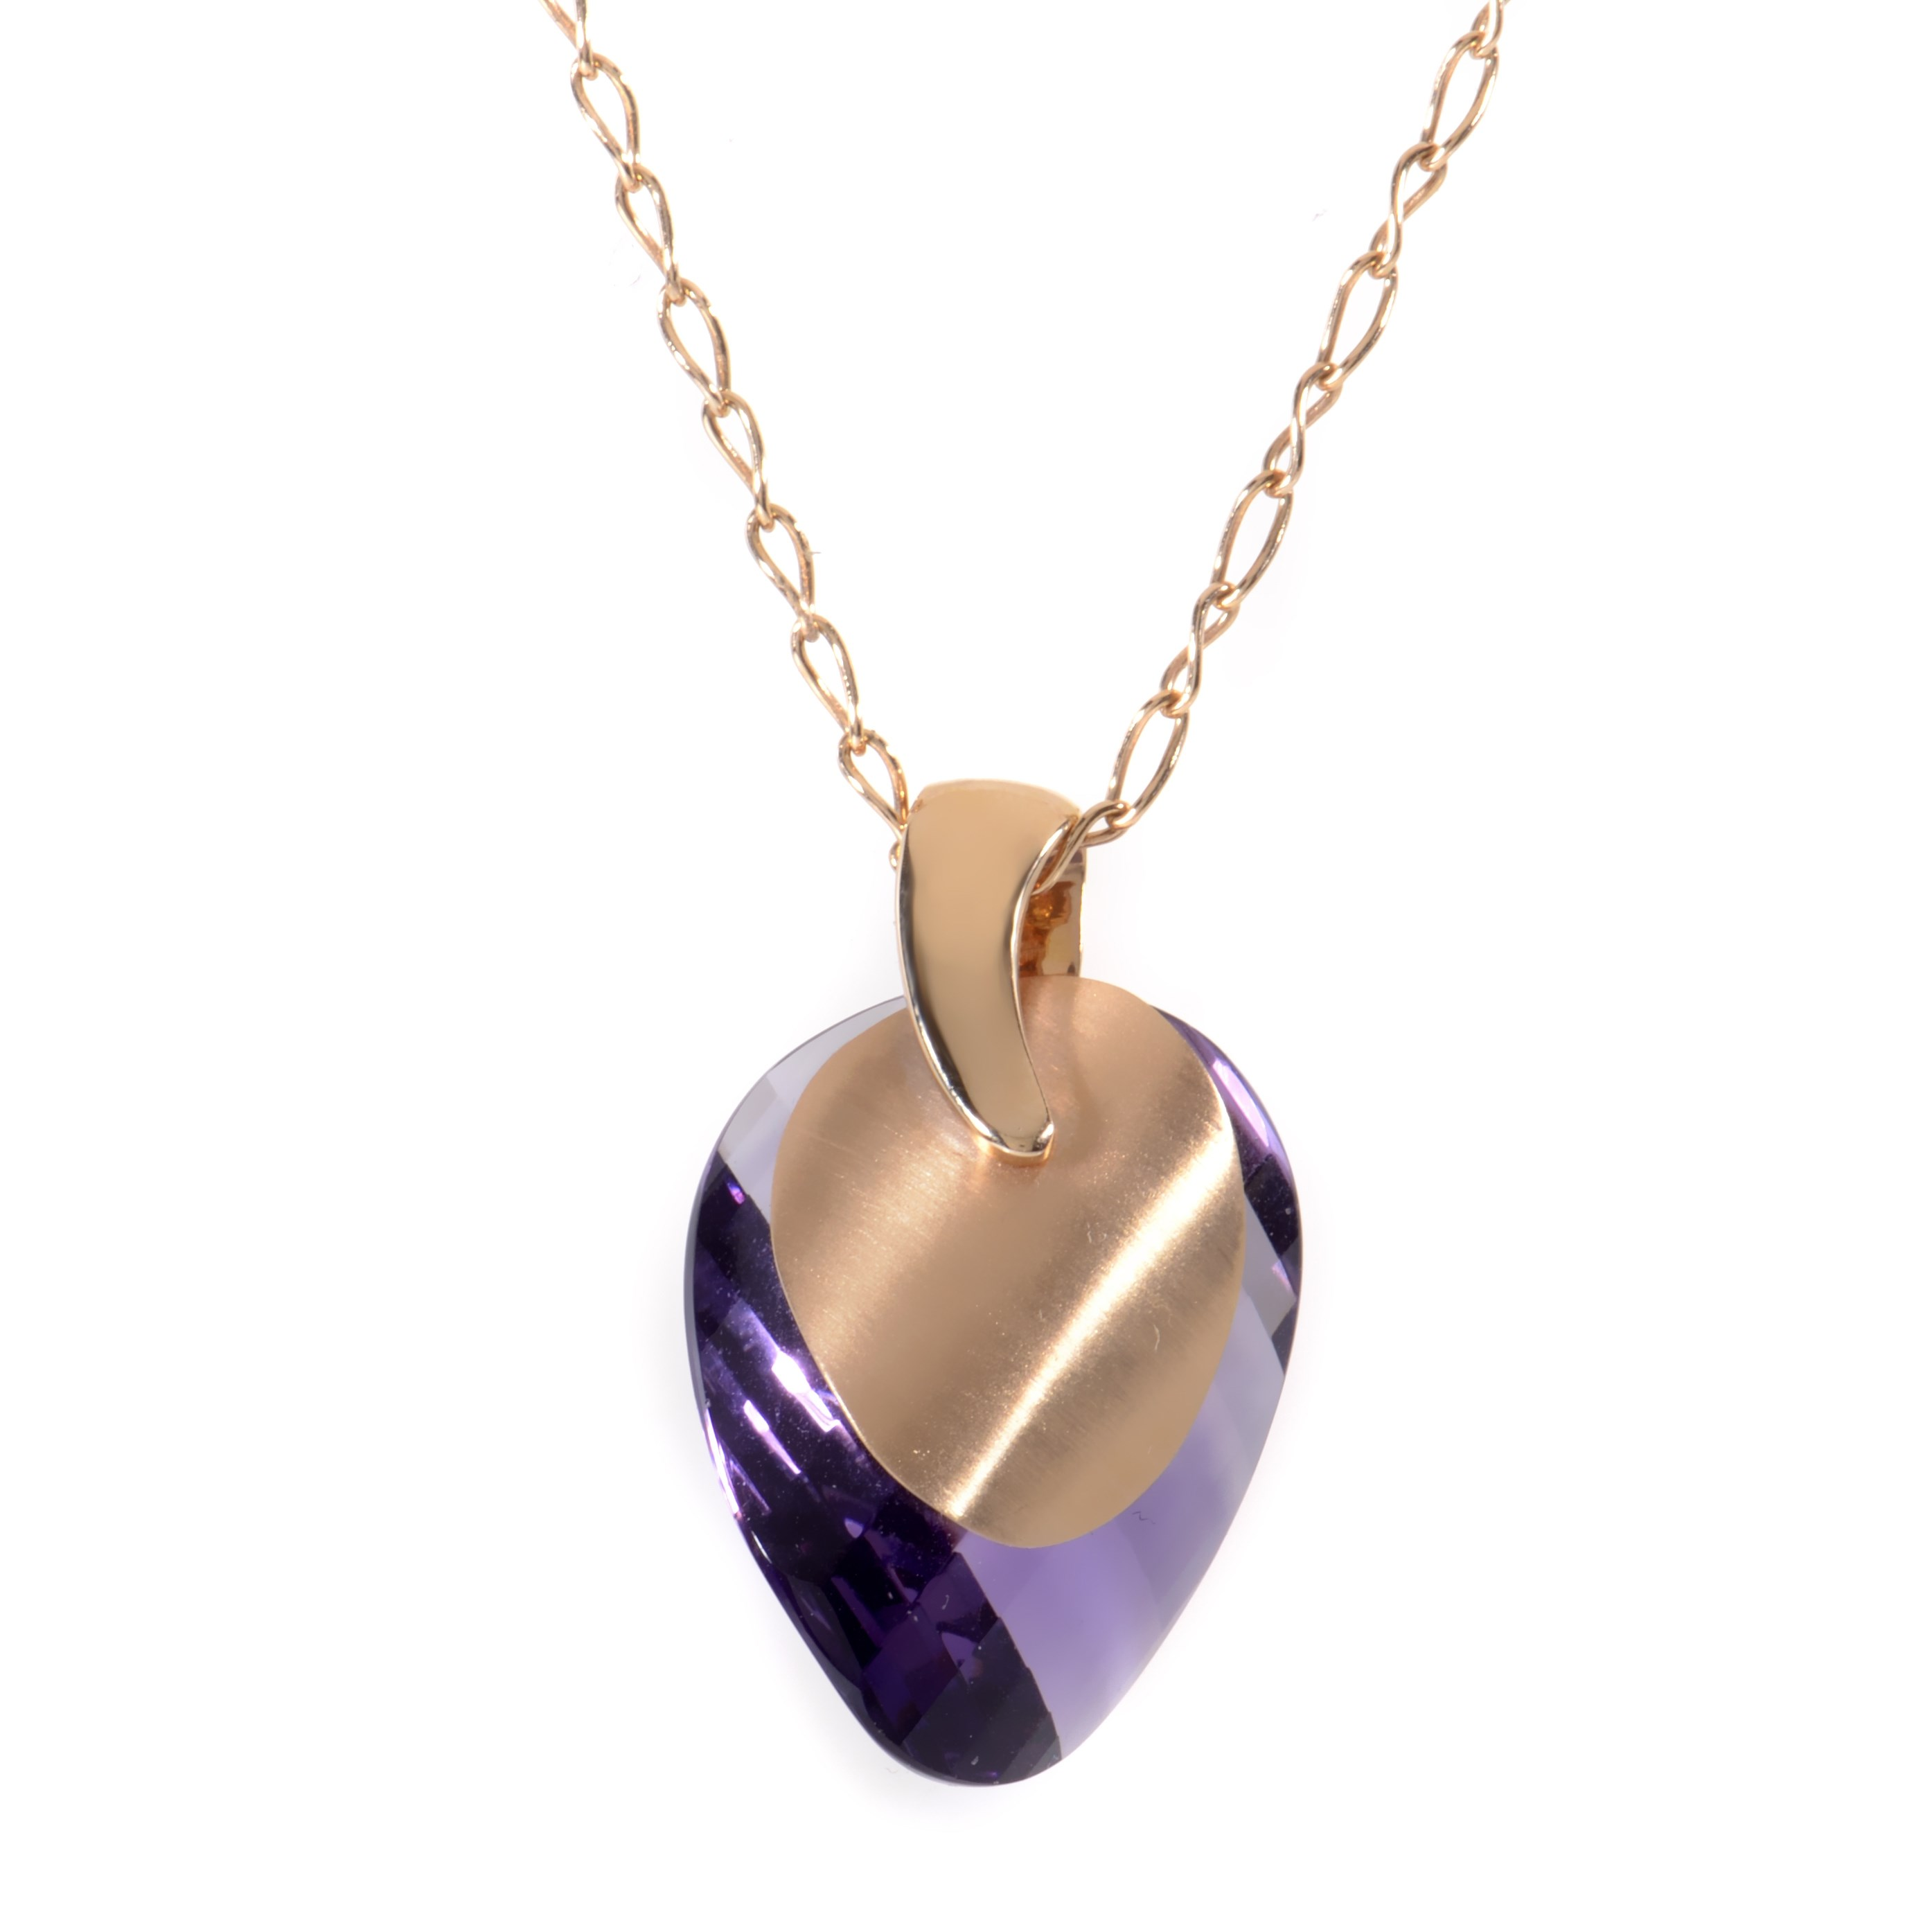 18K Rose Gold Amethyst Gemstone Pendant Necklace PD8-011629RA